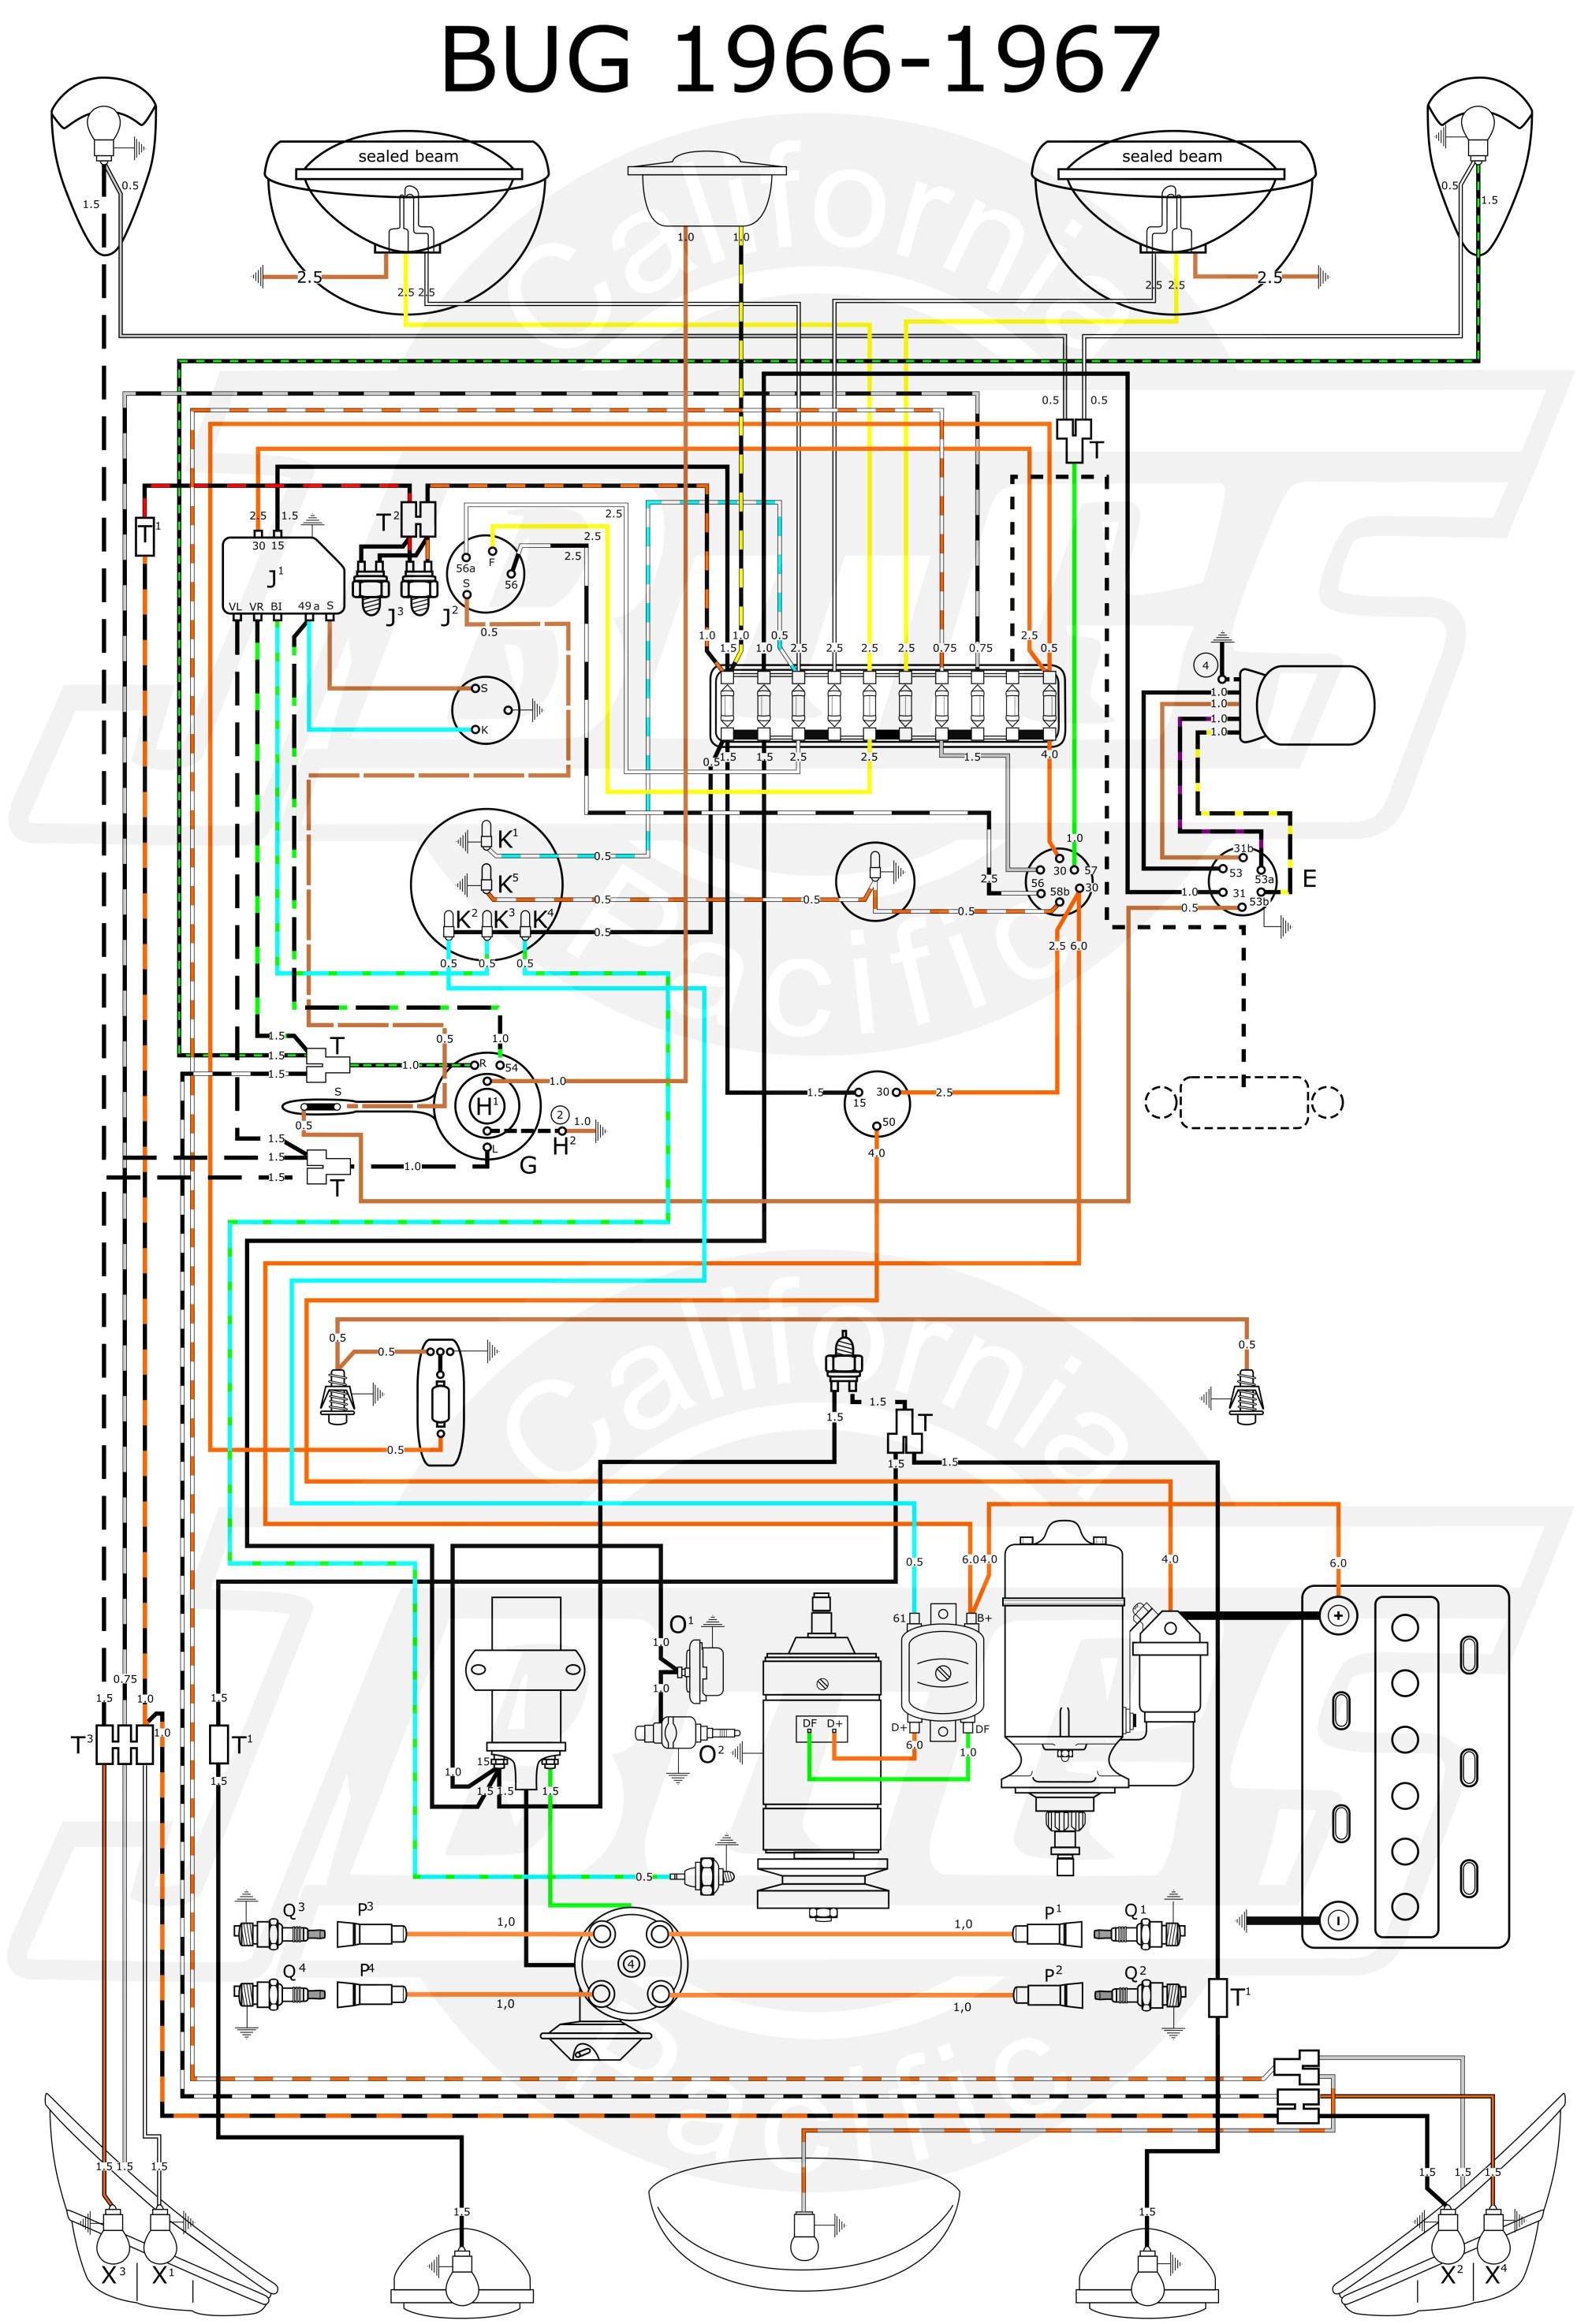 hight resolution of 66 nova wiper motor wiring diagram reinvent your wiring diagram u2022 1966 nova wiring diagram